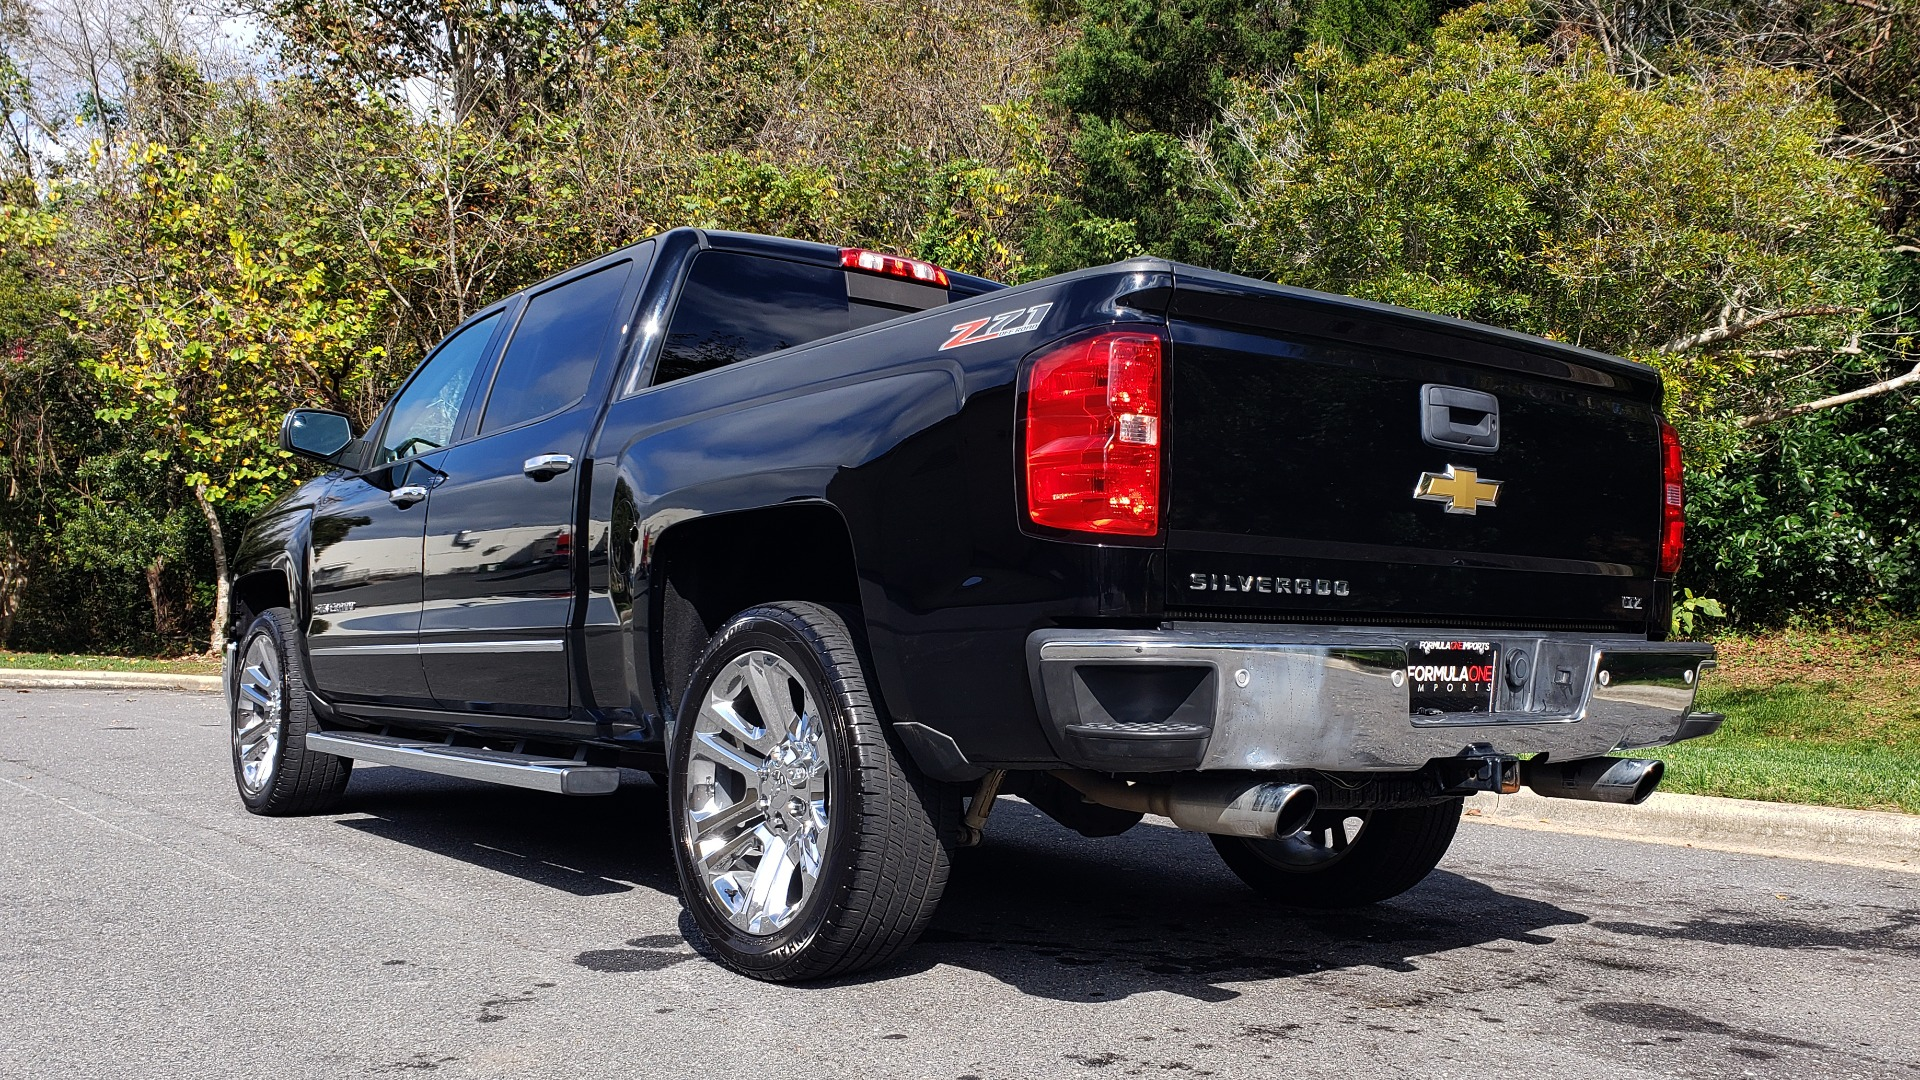 Used 2014 Chevrolet SILVERADO 1500 CREWCAB / LTZ PLUS PKG / 4WD / 2LZ / NAV / BOSE / REARVIEW for sale Sold at Formula Imports in Charlotte NC 28227 3